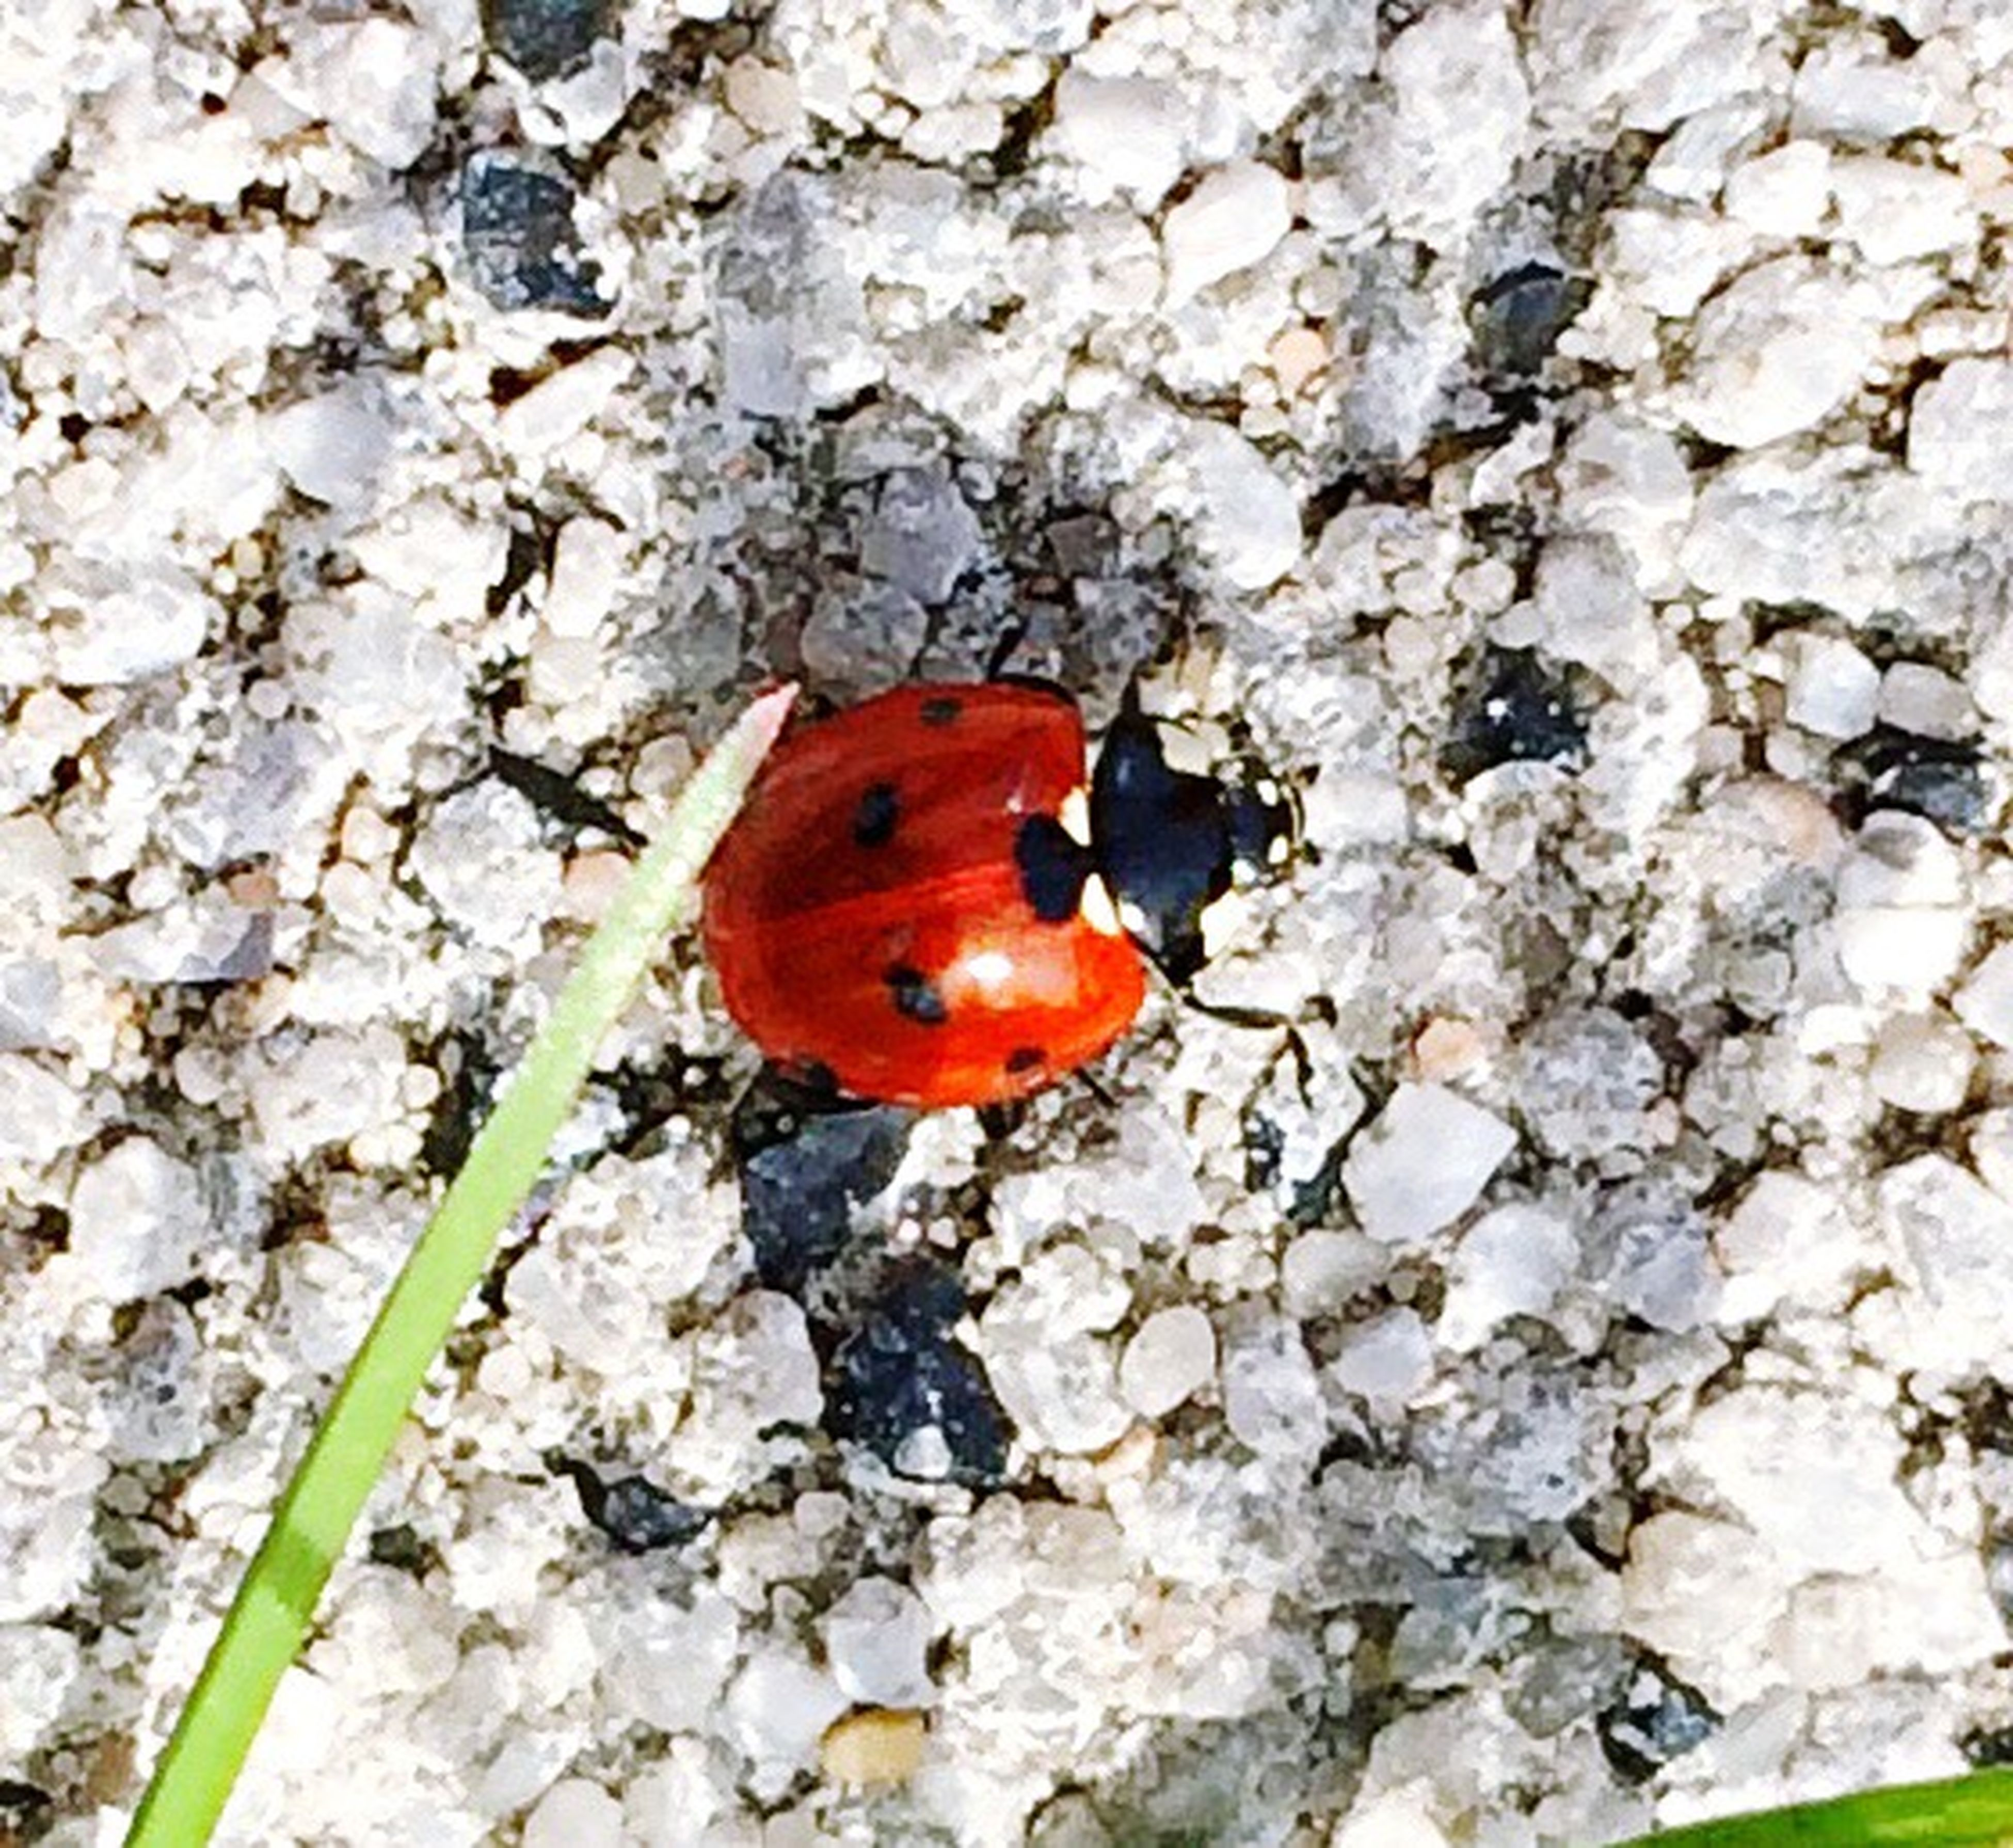 animal themes, red, animals in the wild, wildlife, one animal, rock - object, ladybug, bird, close-up, nature, zoology, outdoors, day, full length, no people, rock, high angle view, orange color, perching, multi colored